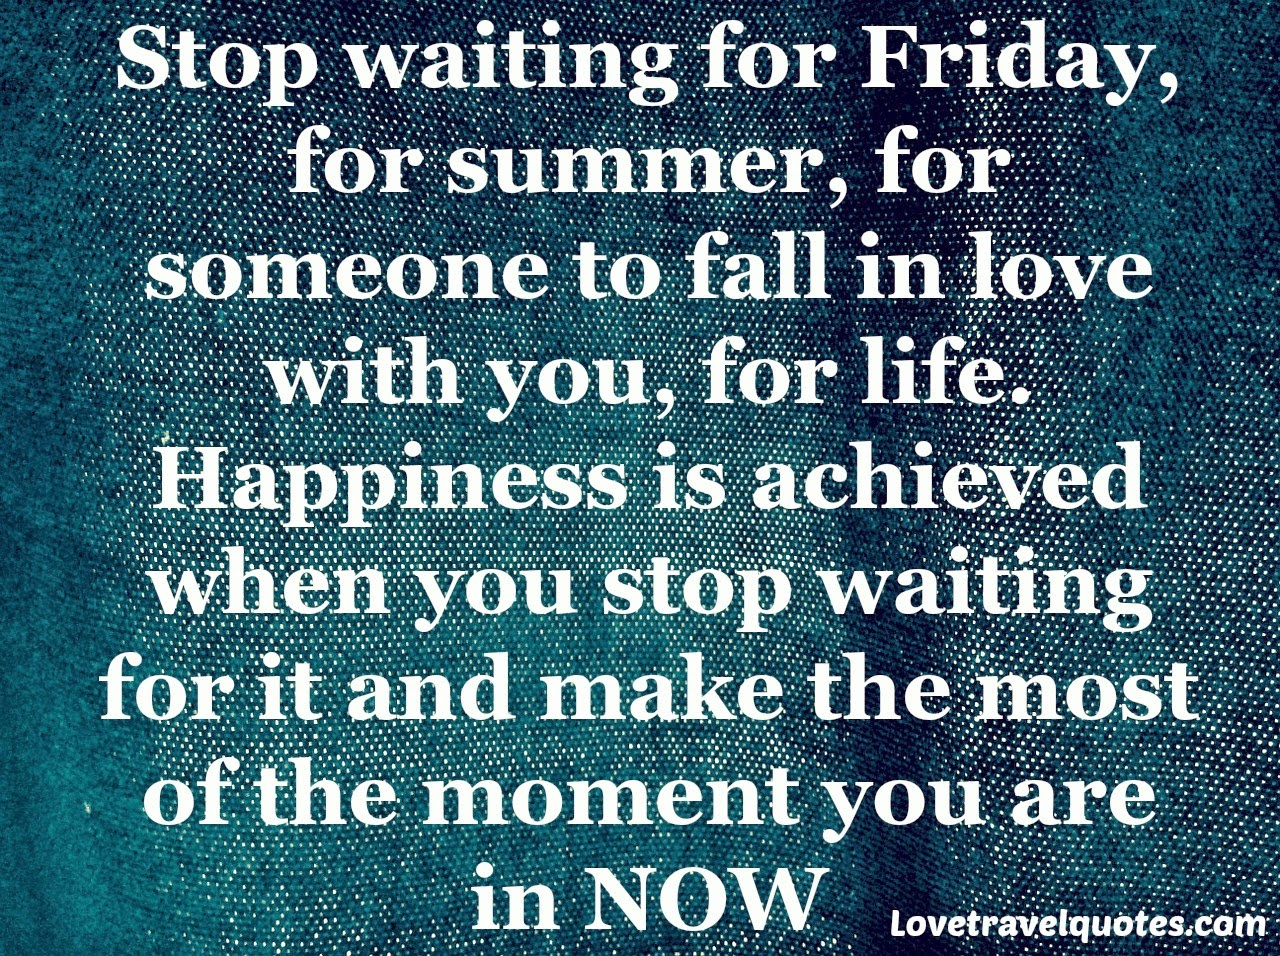 stop waiting for friday for summer, for someone to fall in love with you, for life